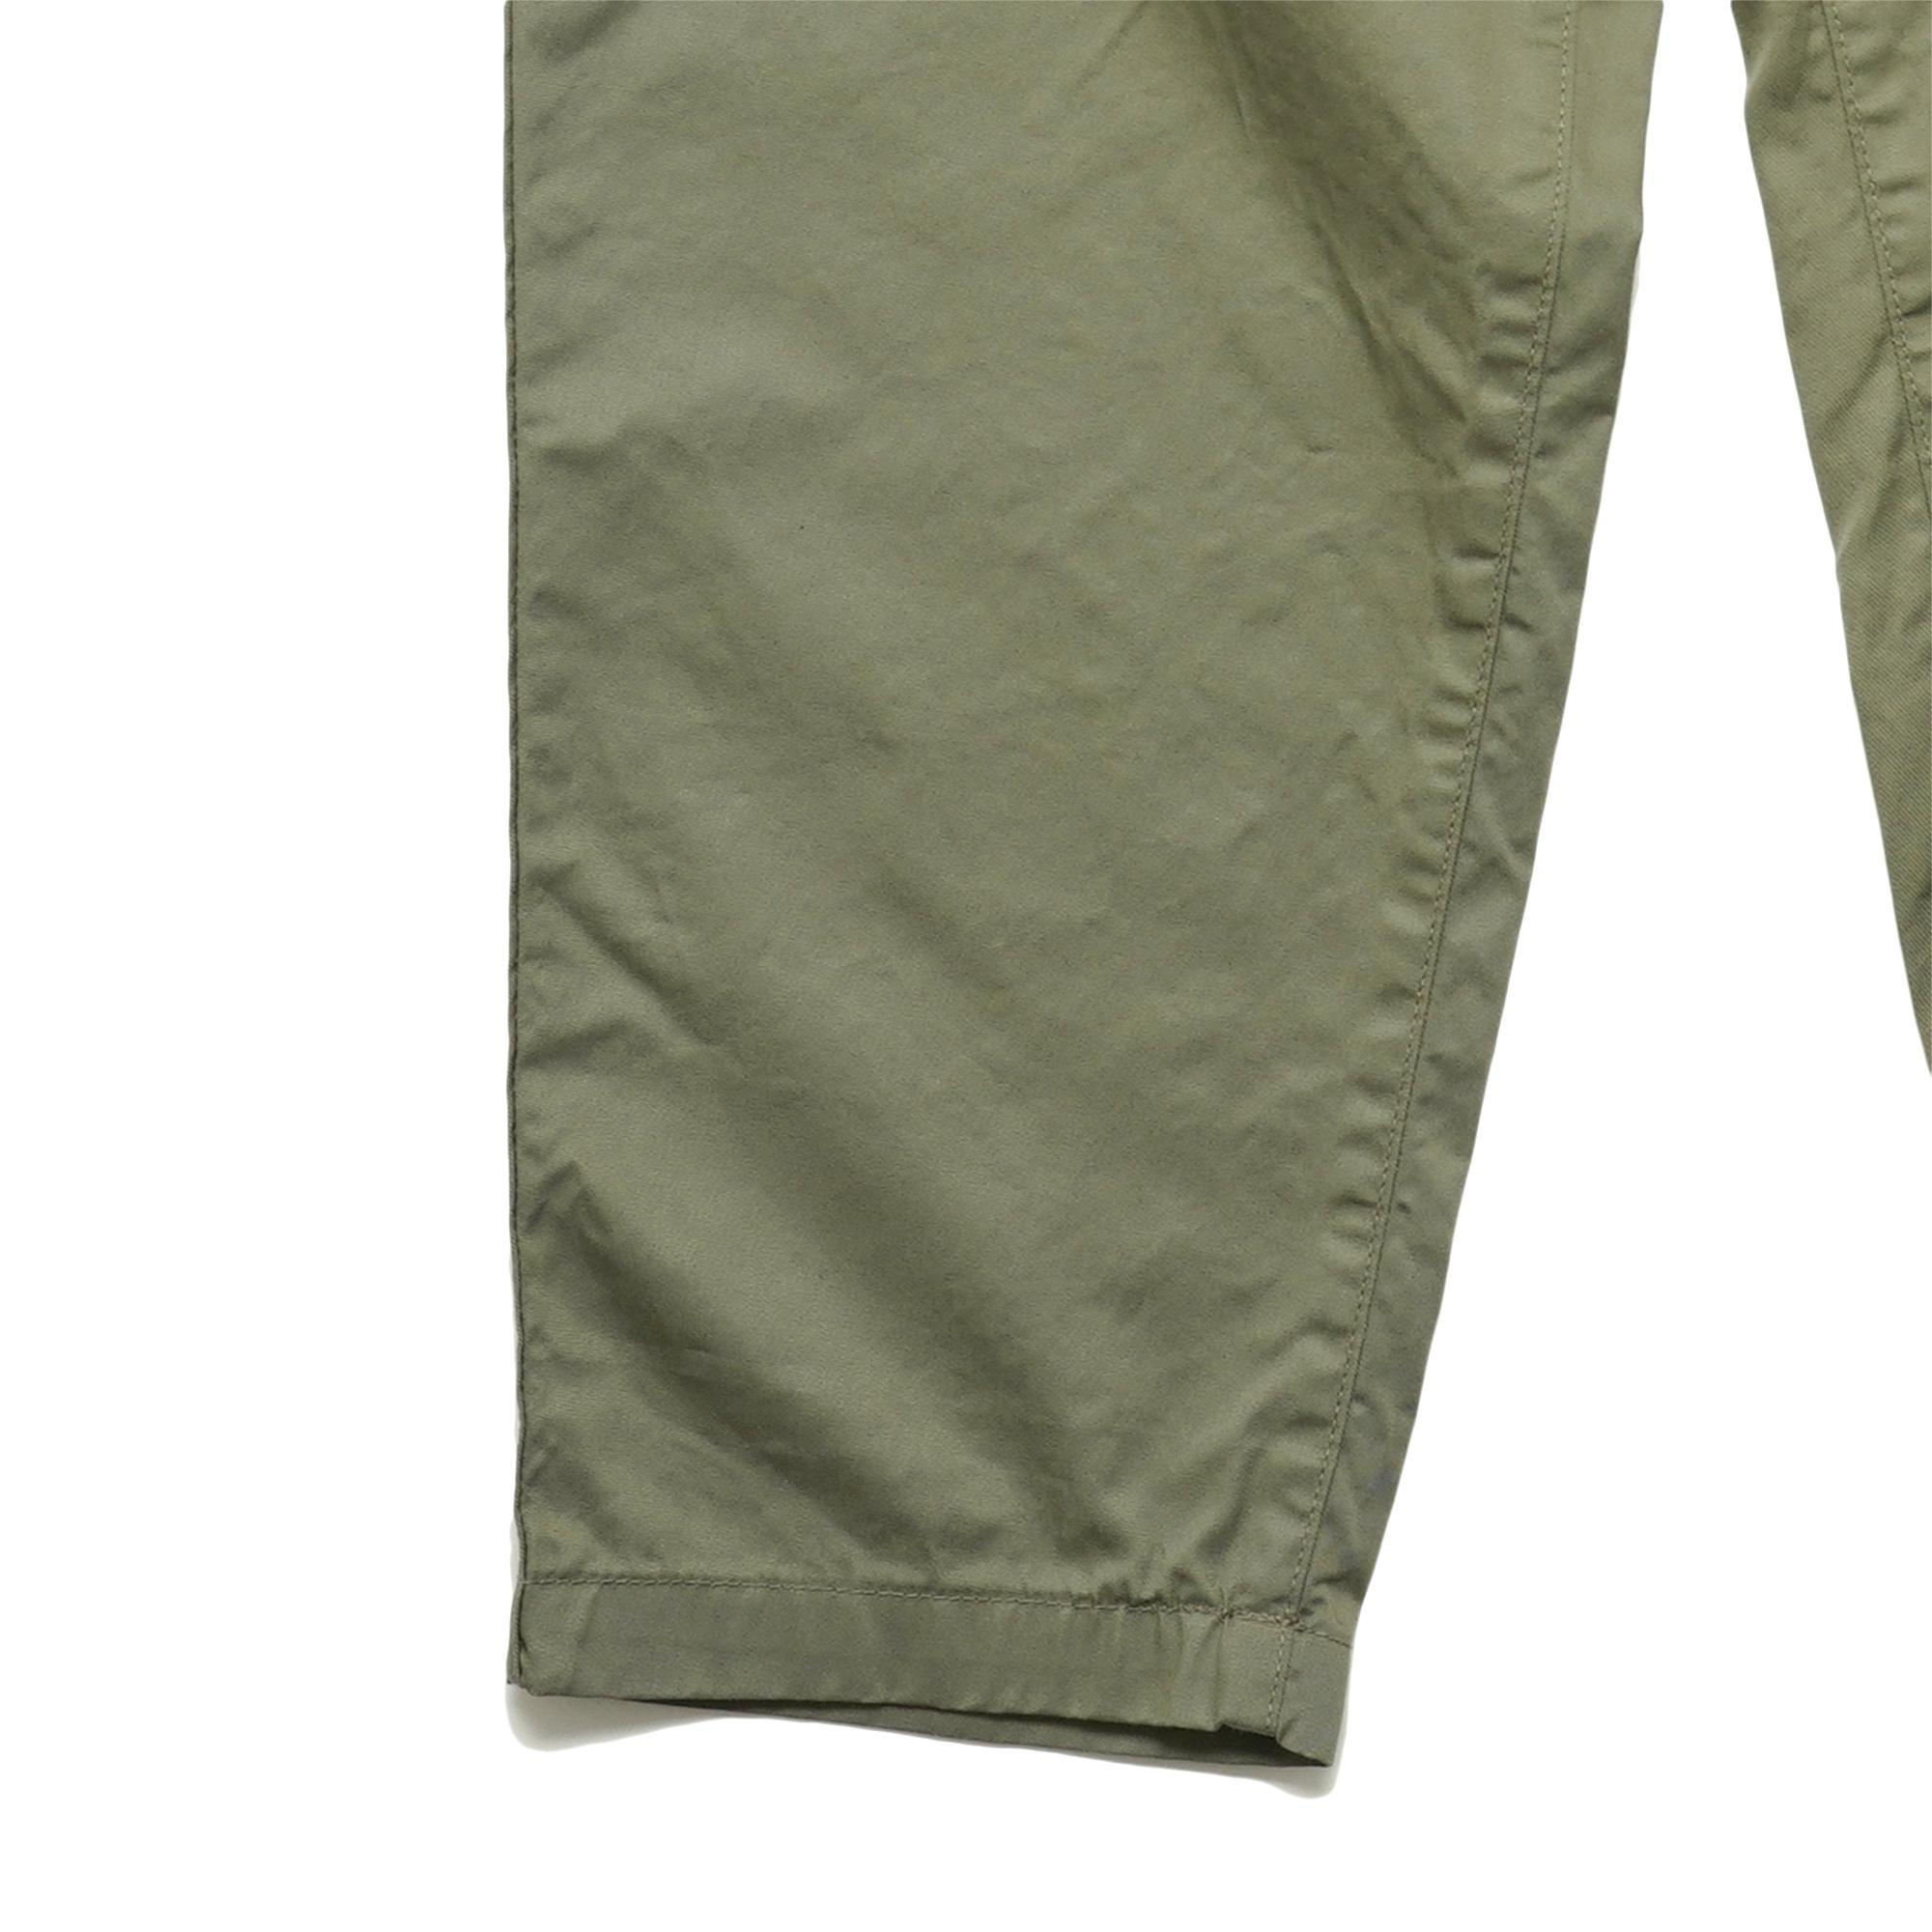 E.G PANTS/BURBERRY CLOTH - PROBAN® FINISHED